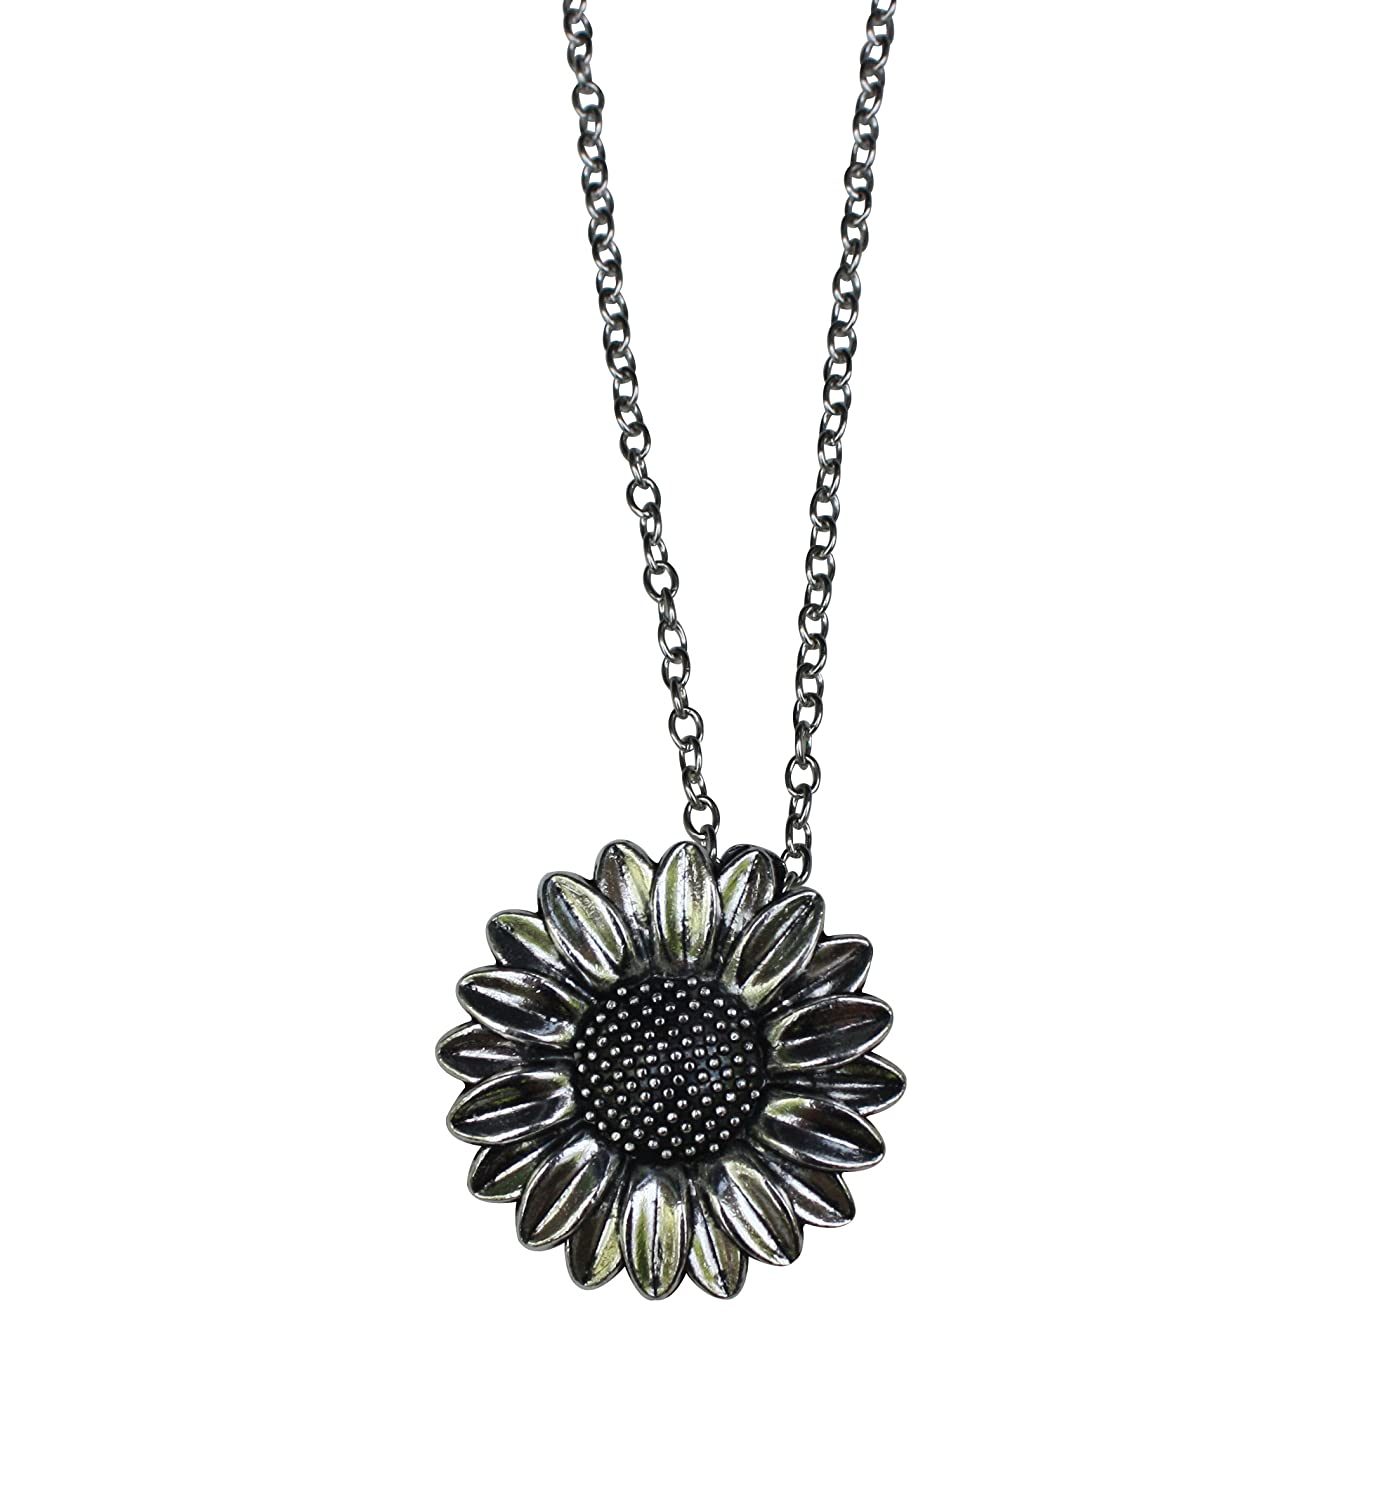 Katara Decor - Daisy Sunflower Necklace Spring Flower Nature A-11